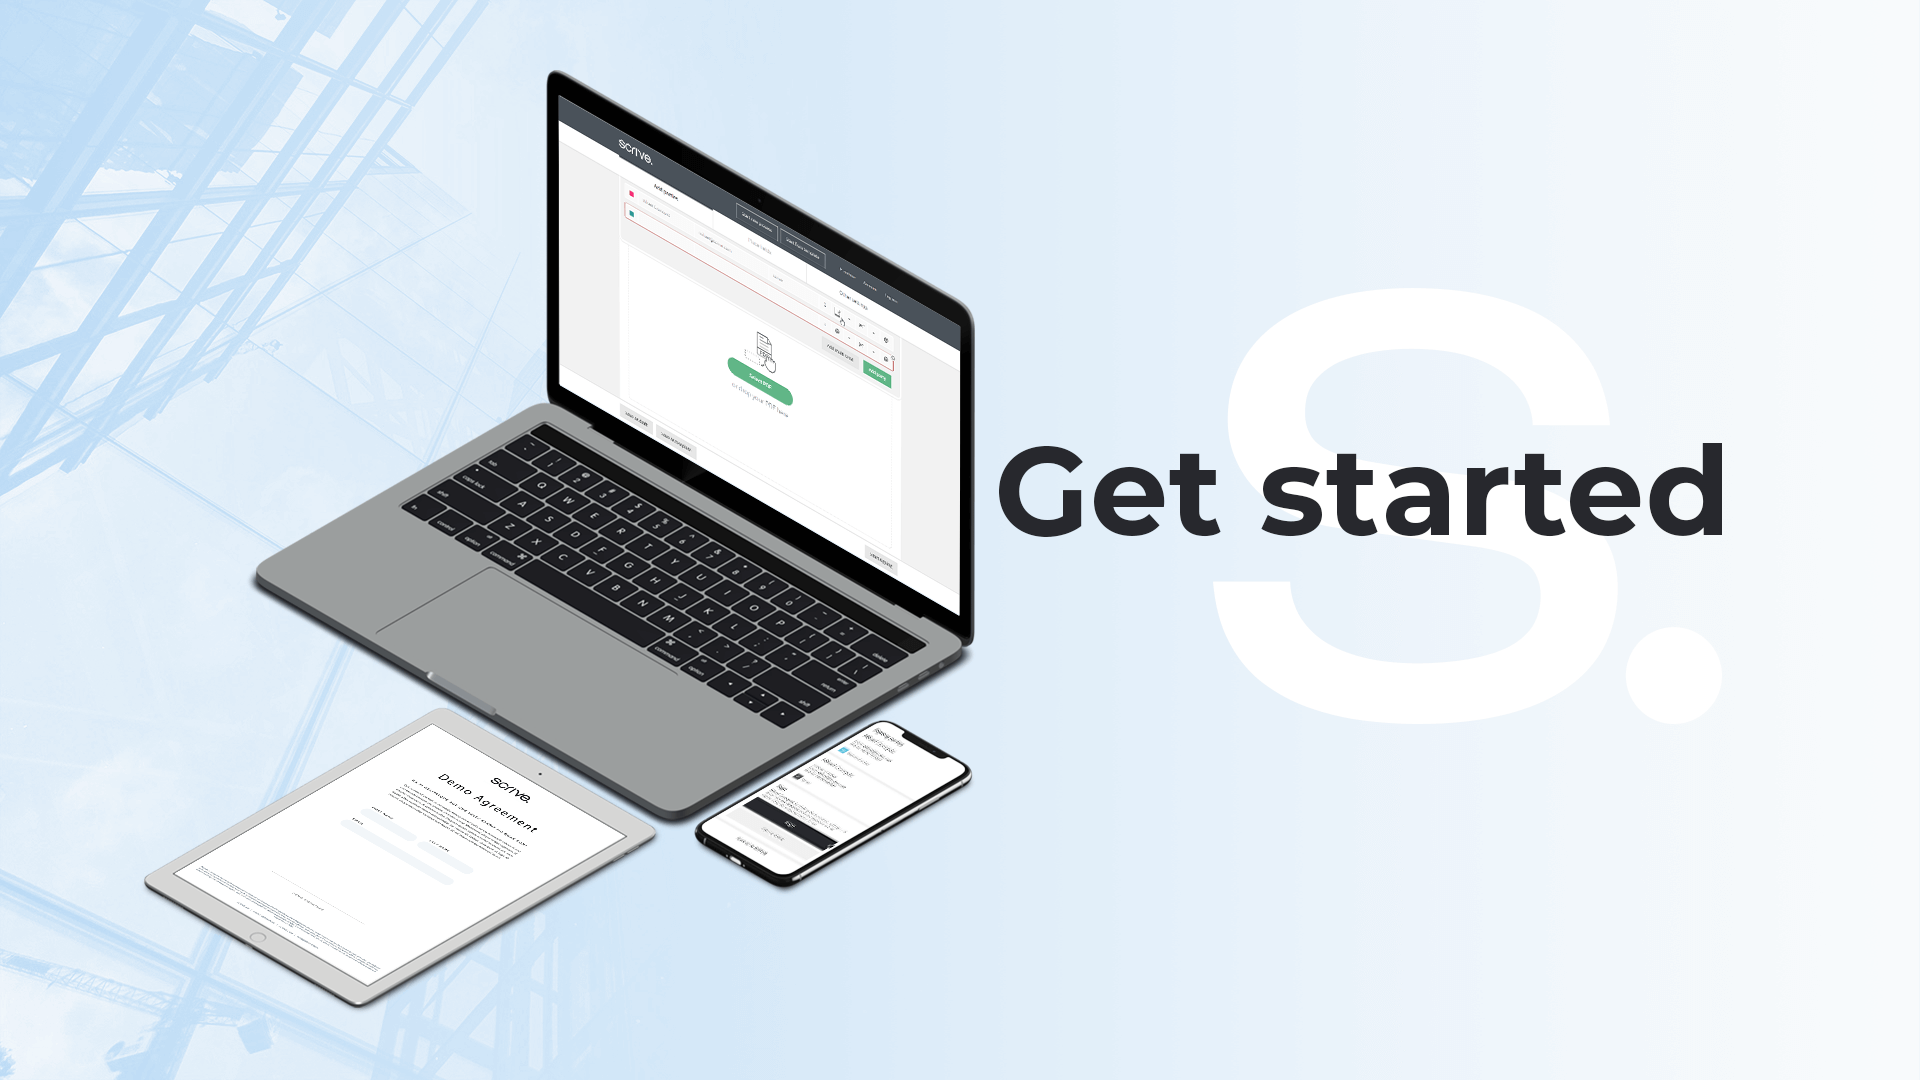 Get started with Scrive